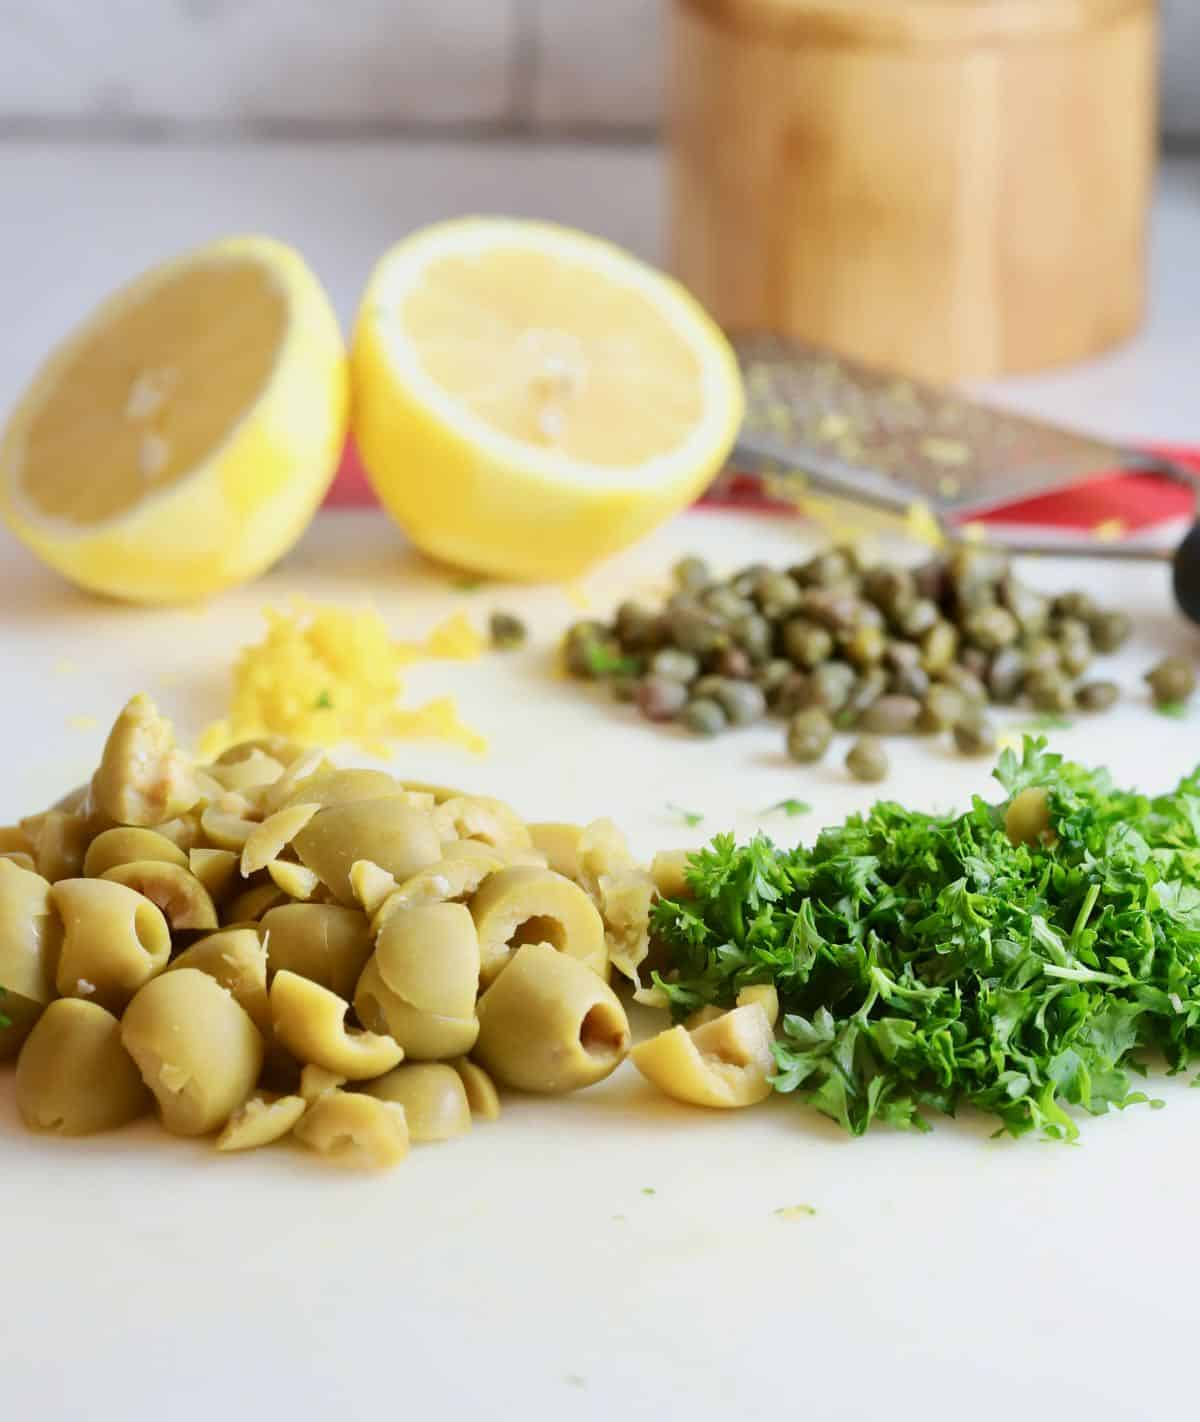 Chopped green olives, capers and slices of lemon.